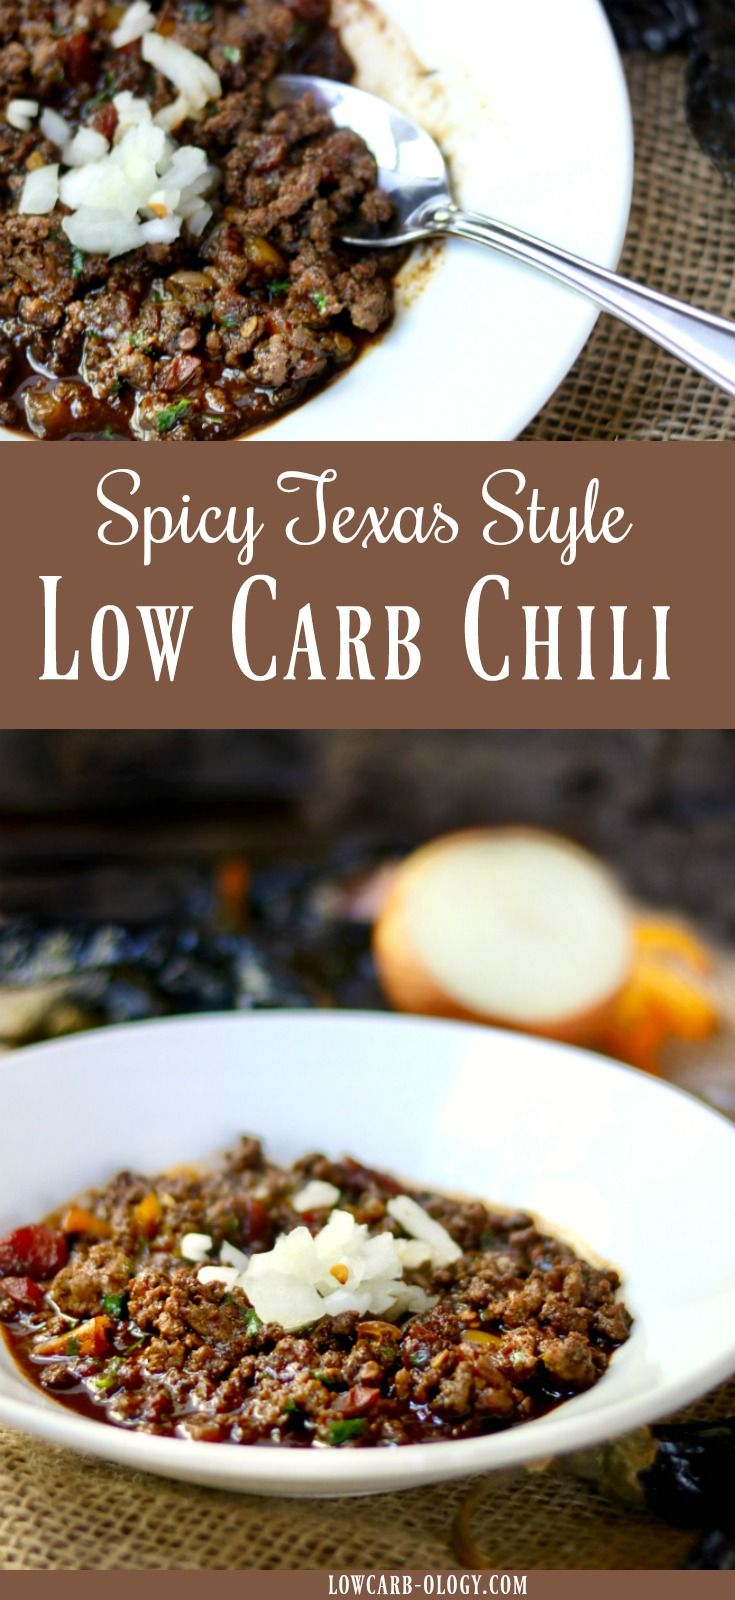 This low carb chili recipe is based on my favorite Texas chili. Meaty and rich with plenty of spice from two kinds of chile peppers and homemade chile powder. Just 3 net carbs! #lowcarb #Chili